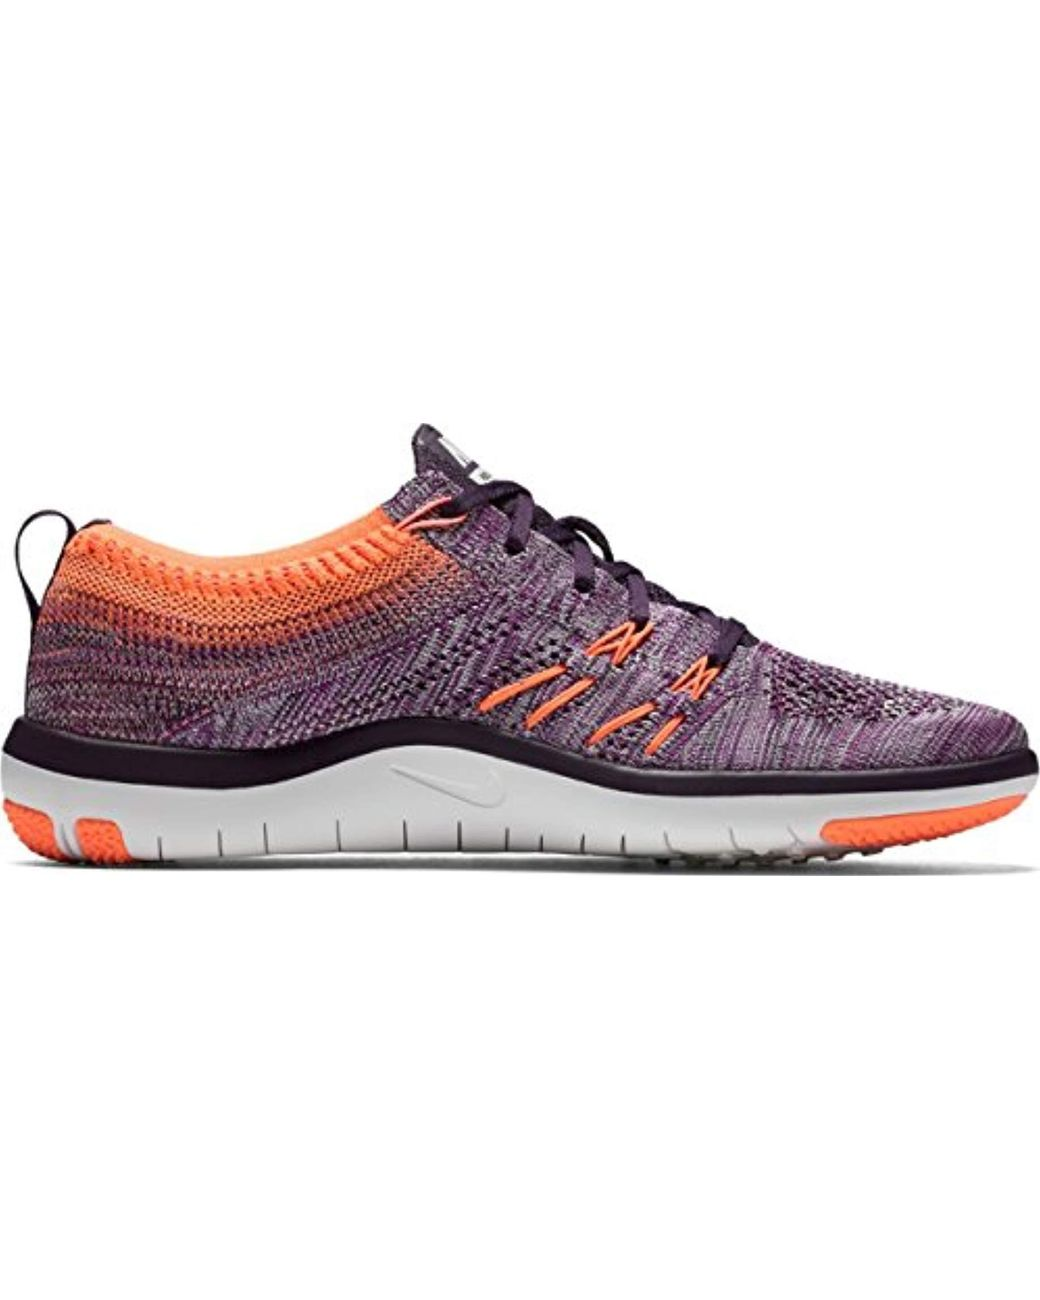 Nike Wmns Free Tr Focus Flyknit, Hyper Voltbleached Lilac